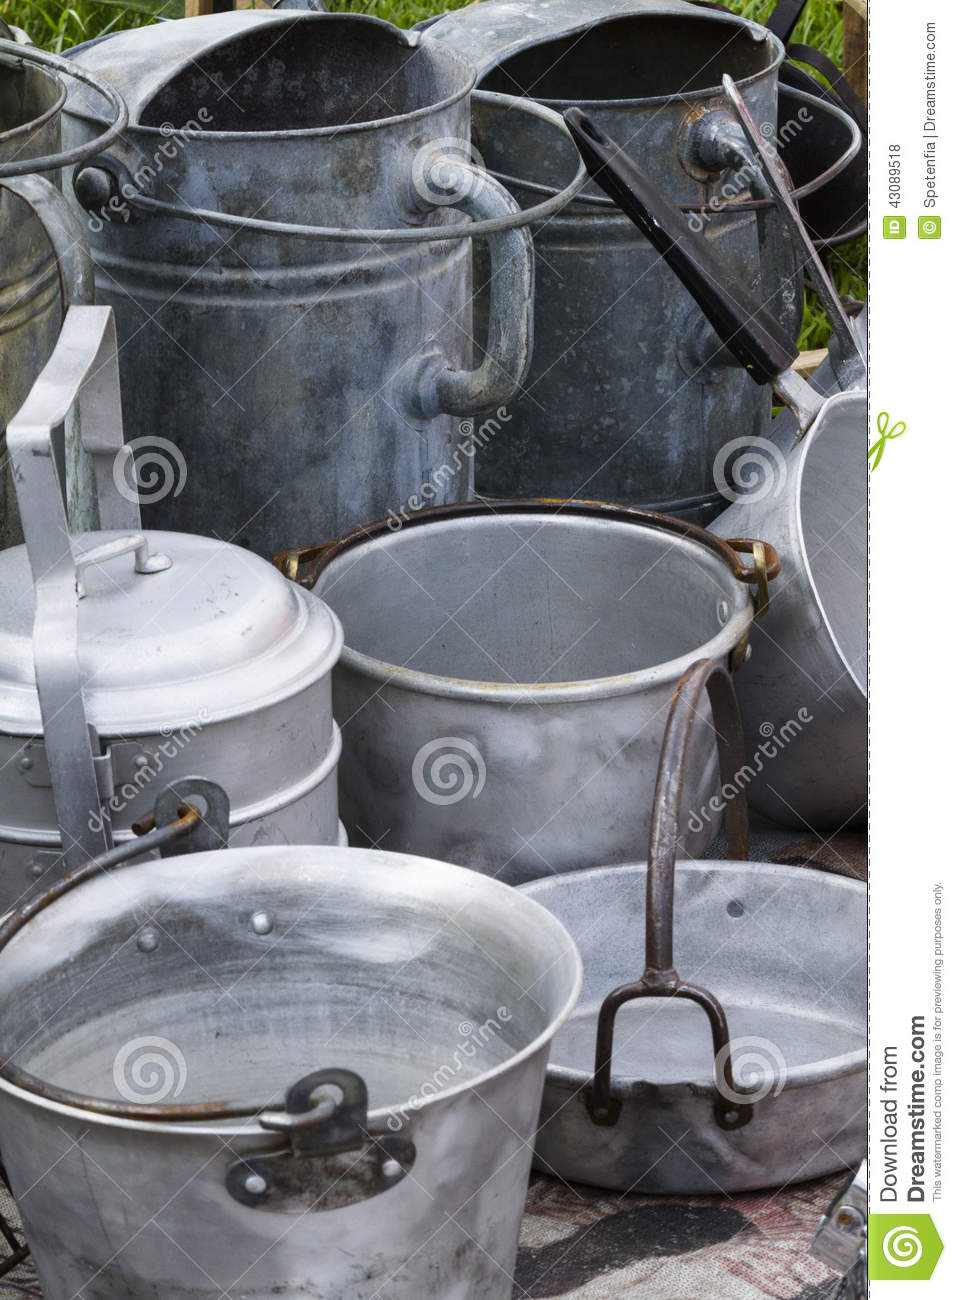 kitchen pots and pans ge appliance packages old stock photo. image of container, cooker ...